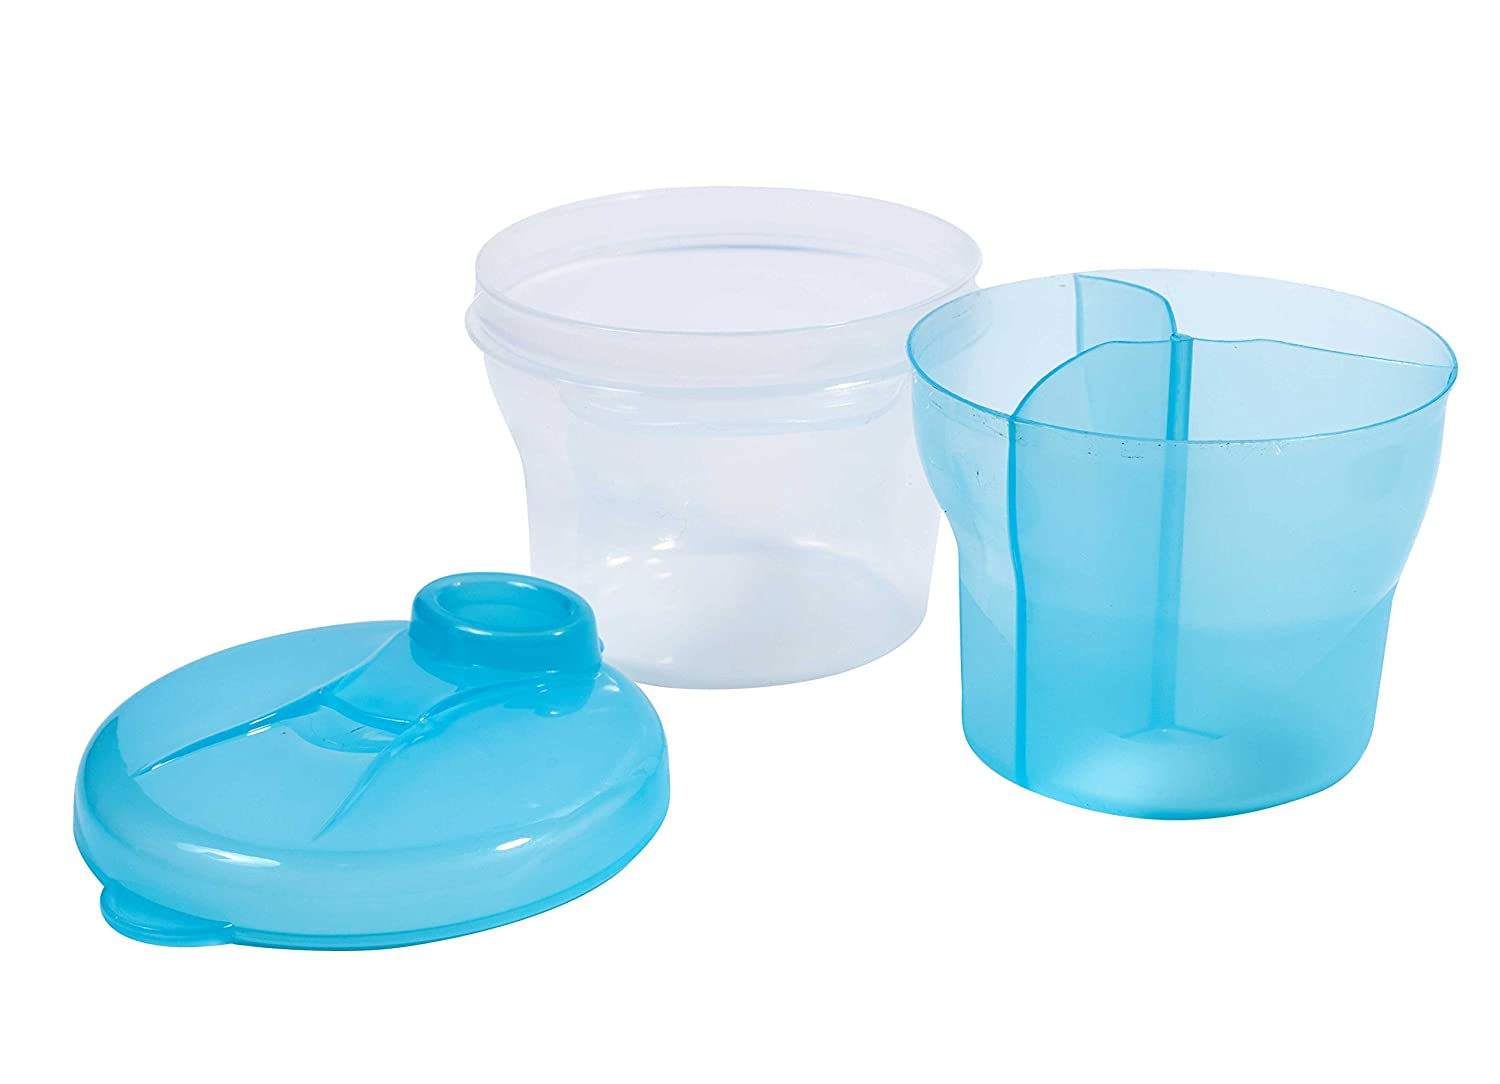 Green Bright Concepts Powder Formula Dispenser and Snack Cup